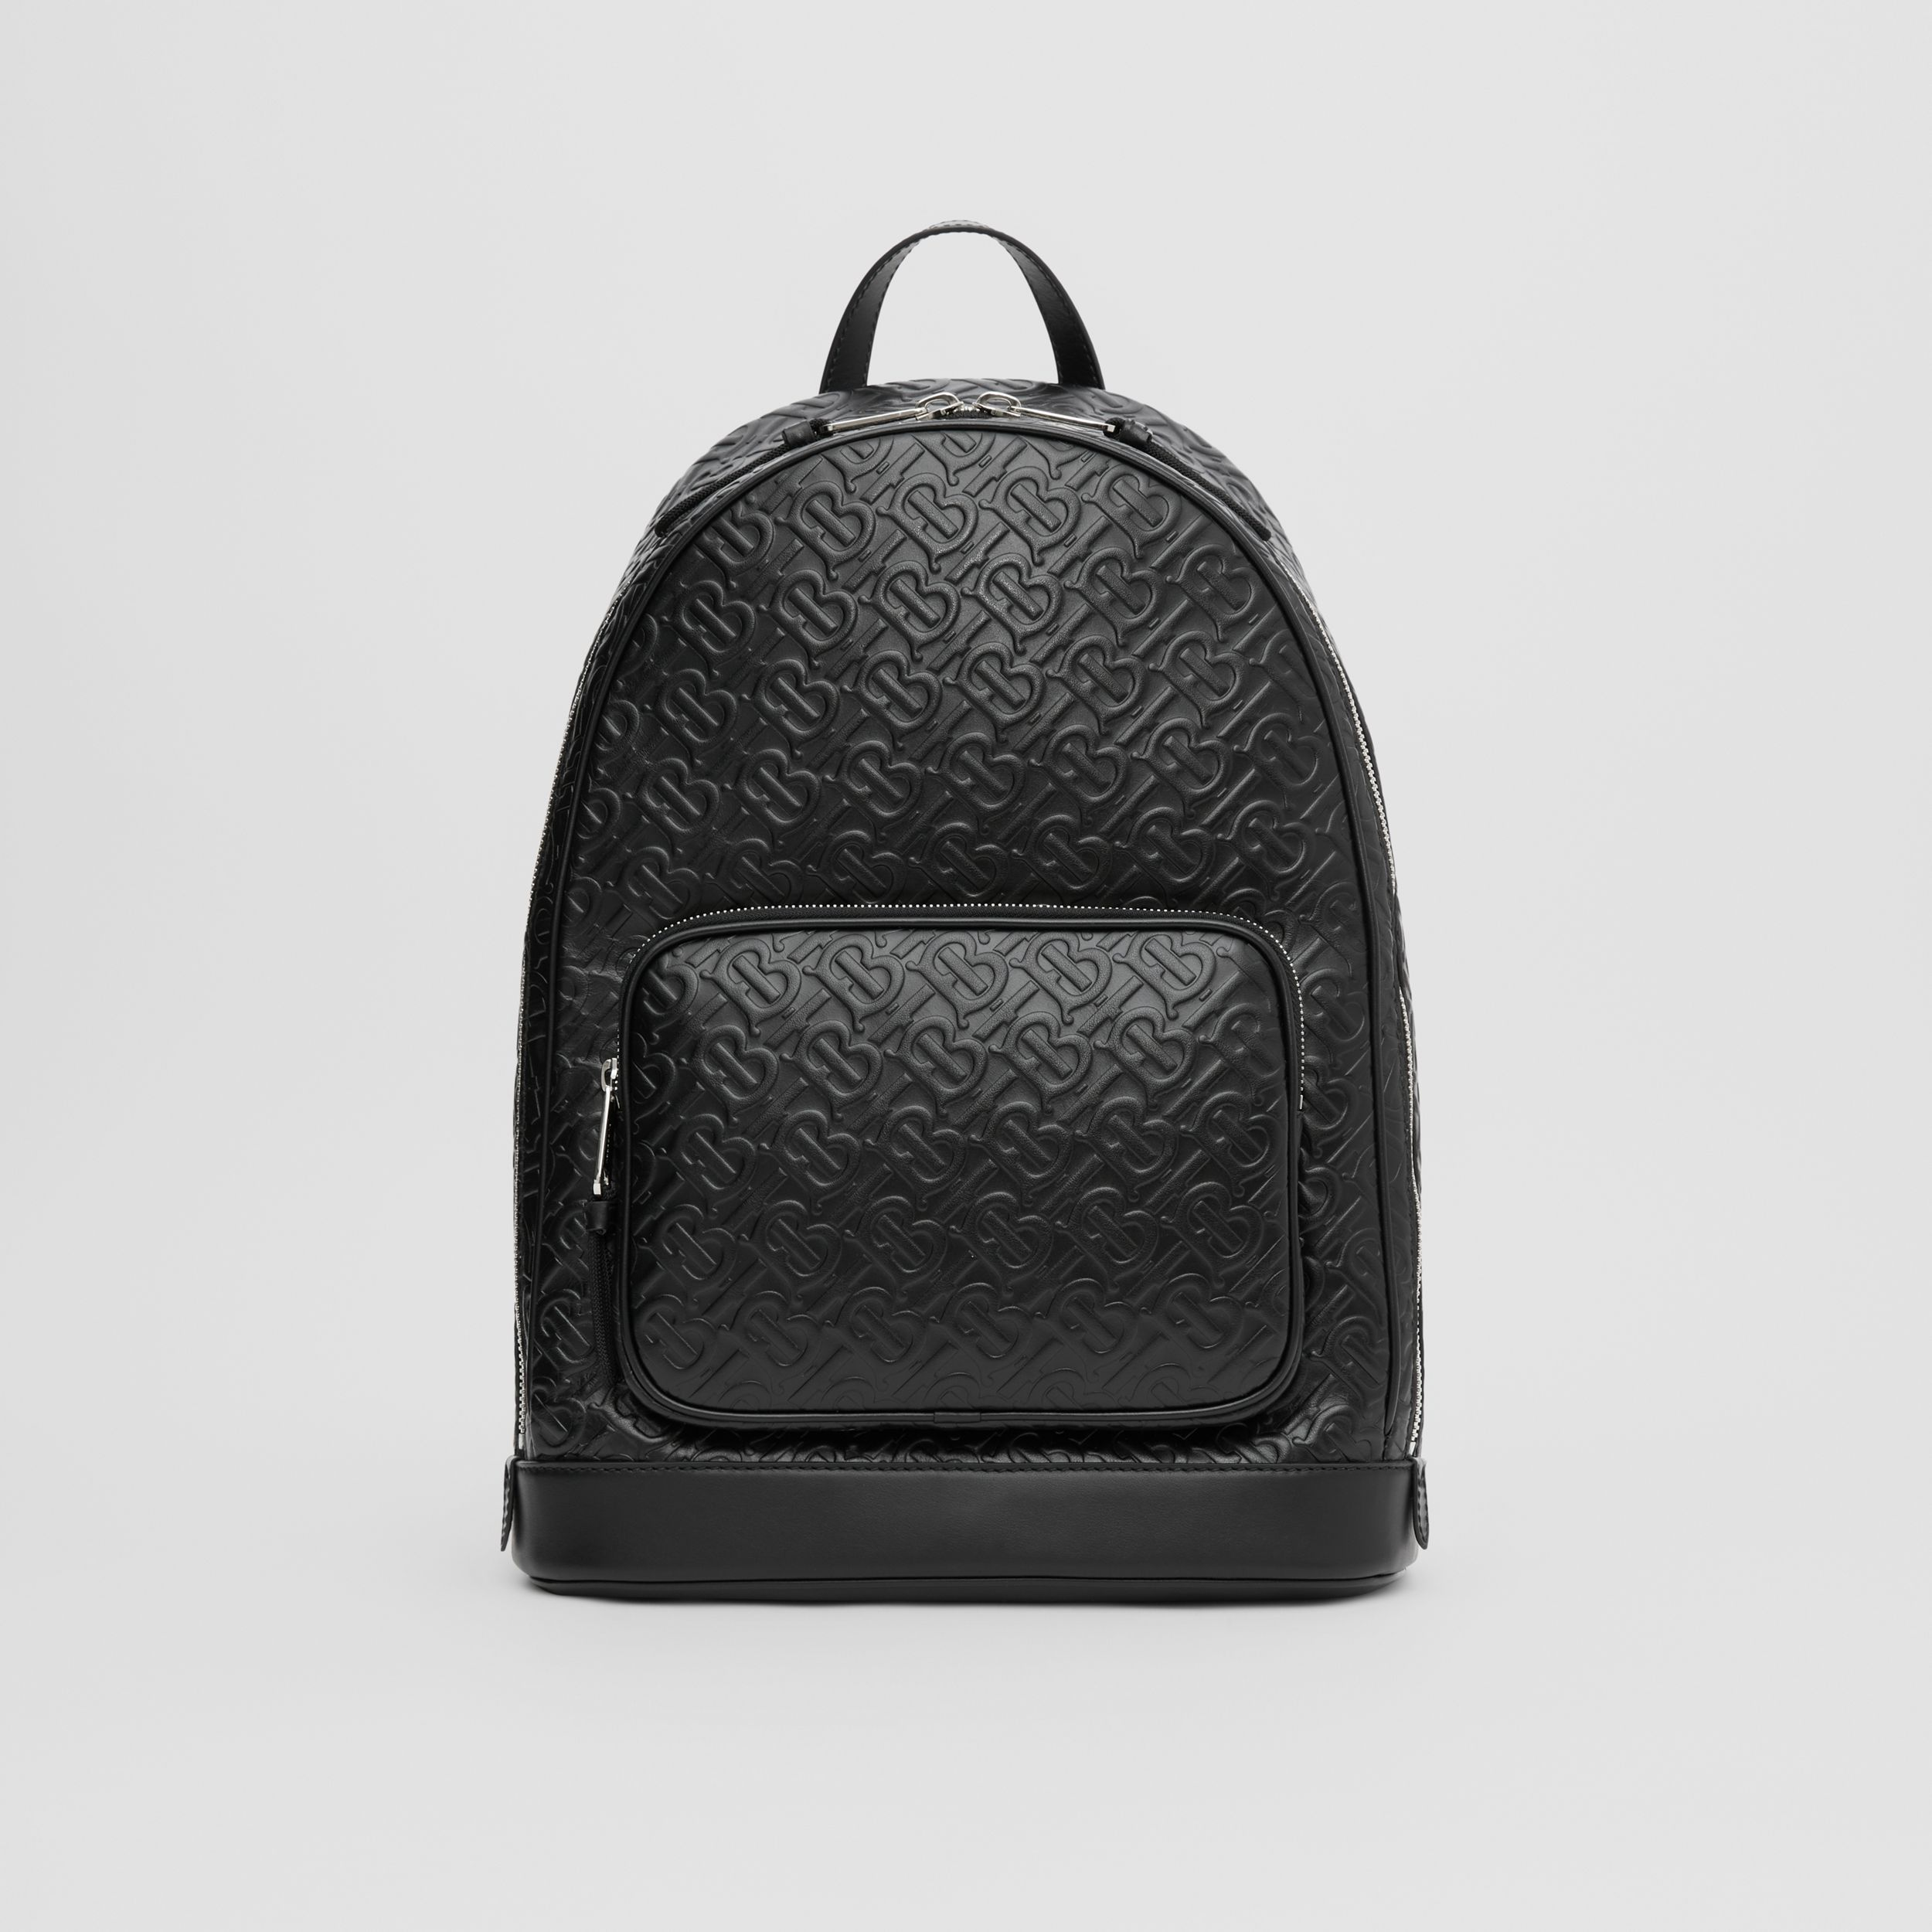 Monogram Leather Backpack in Black - Men | Burberry - 1